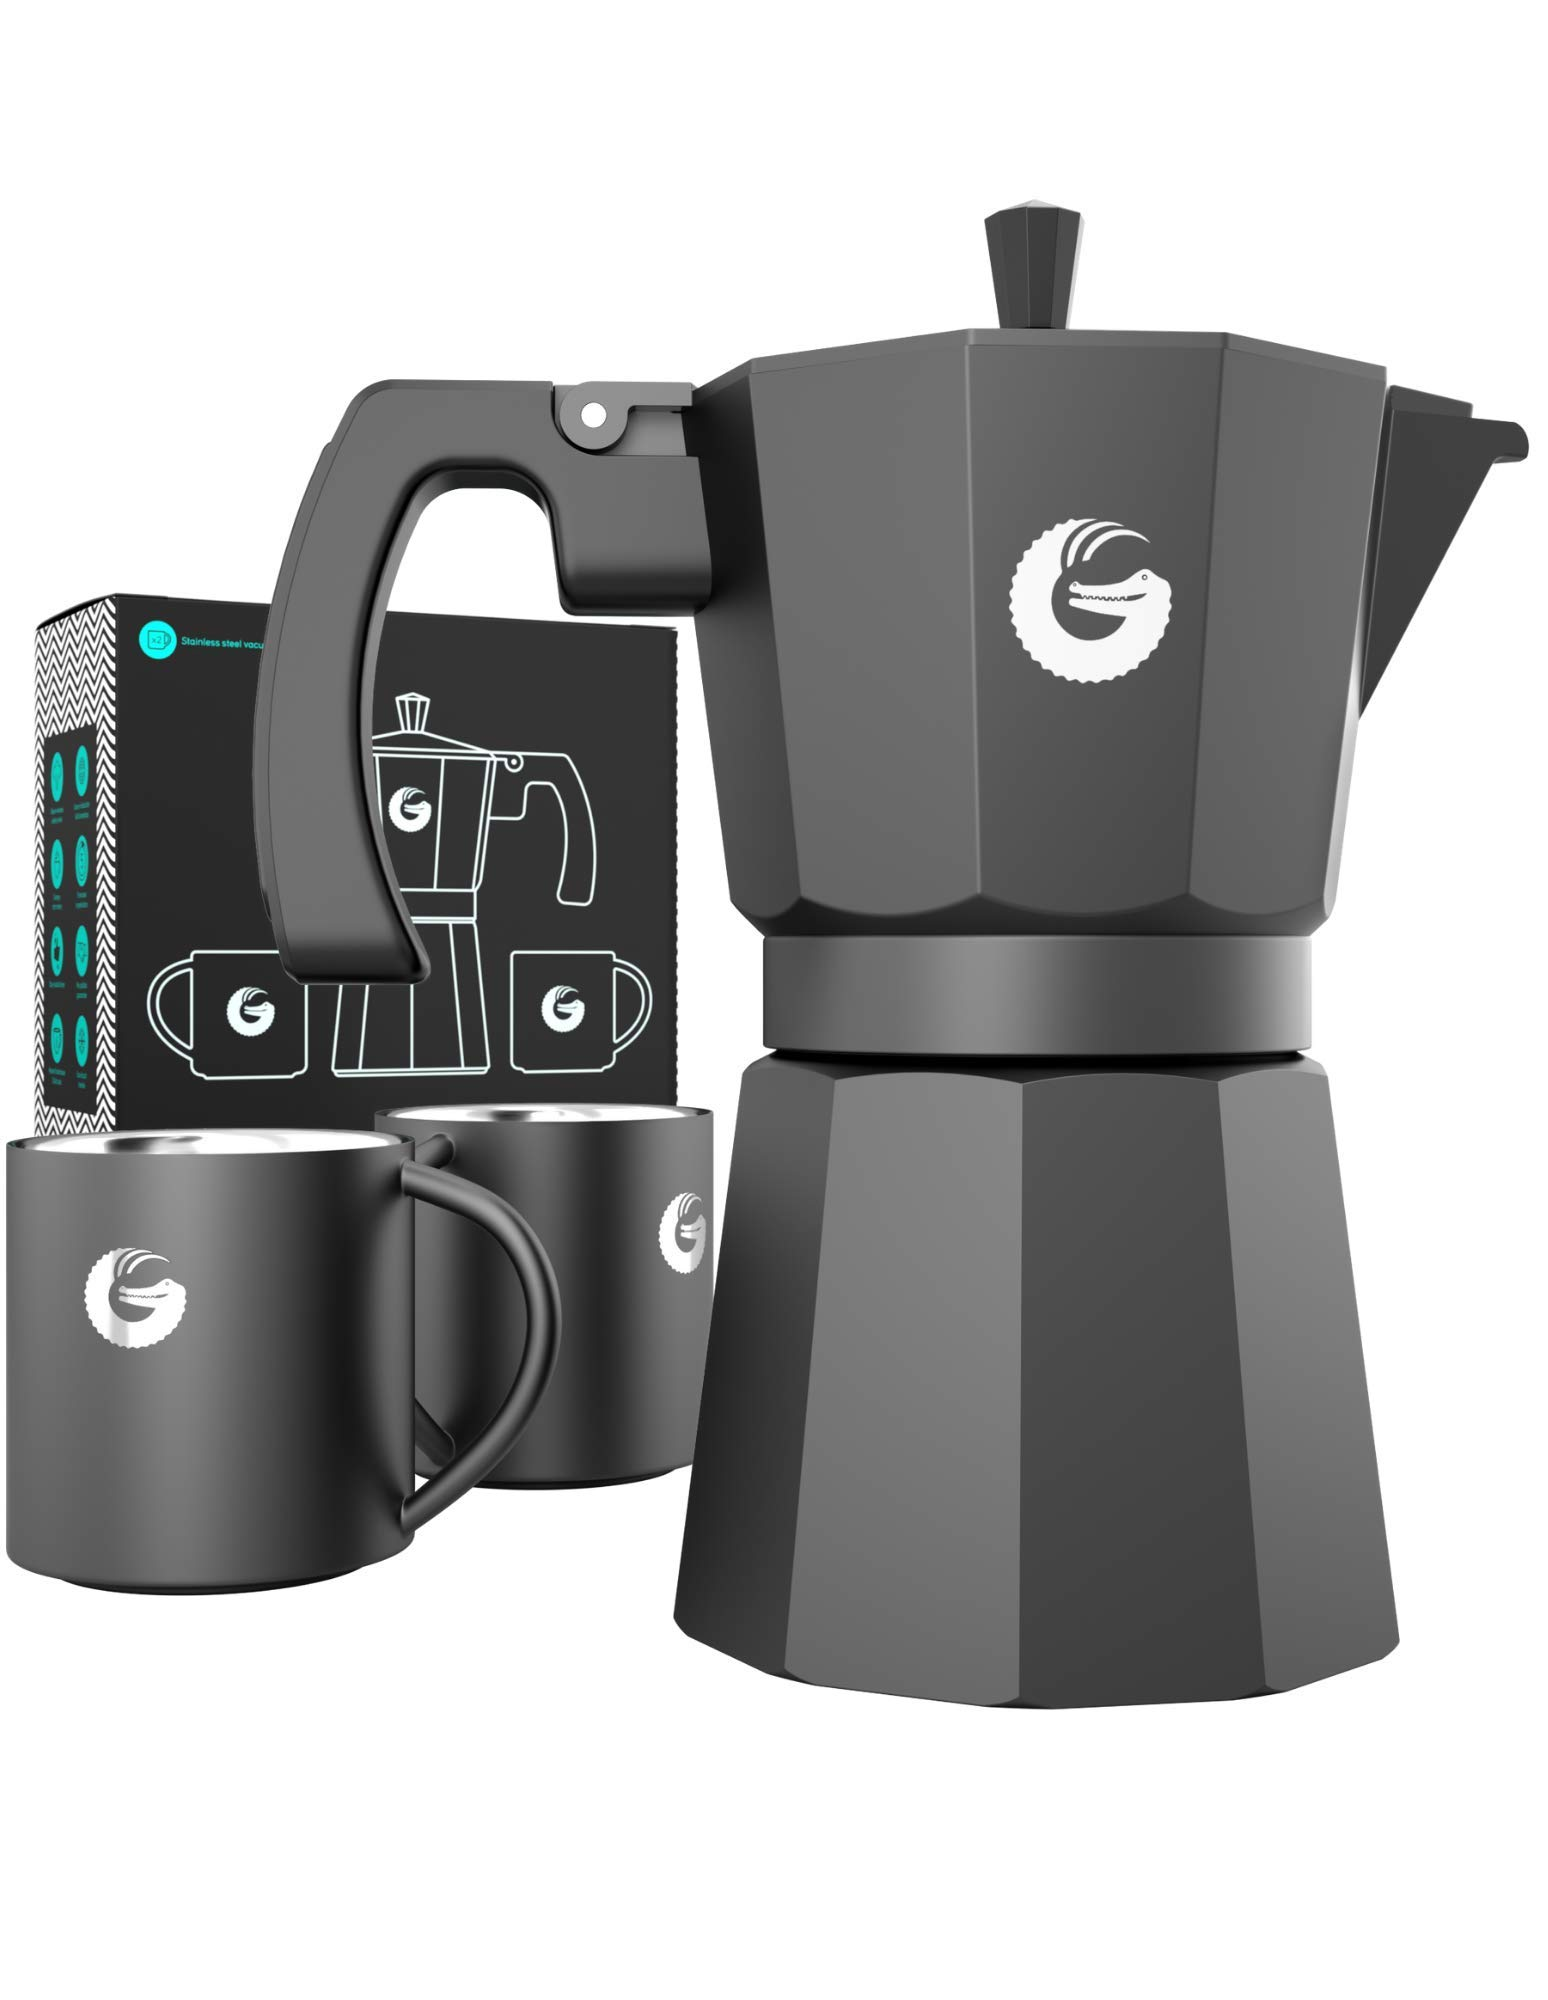 Coffee Gator Espresso Moka Pot - Stovetop Brewer Plus 2 Thermal Cups - 12 Ounce